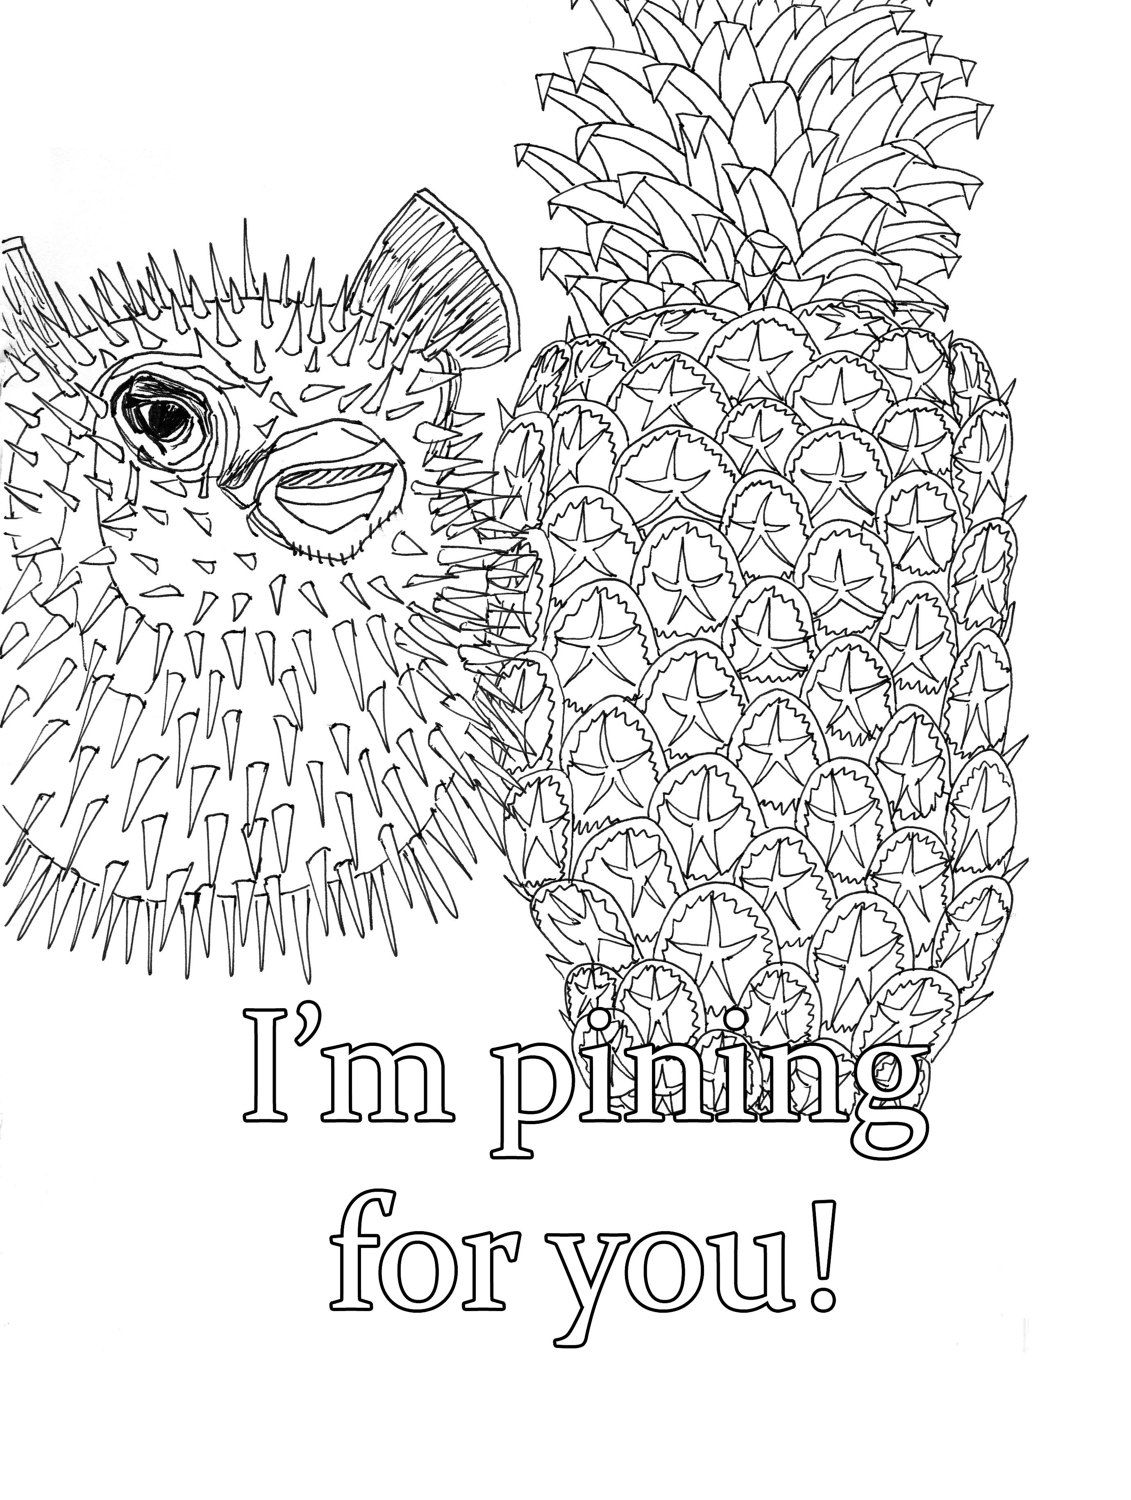 Pufferfish and Pineapple - I\'m pining for you! - Color Your Own ...